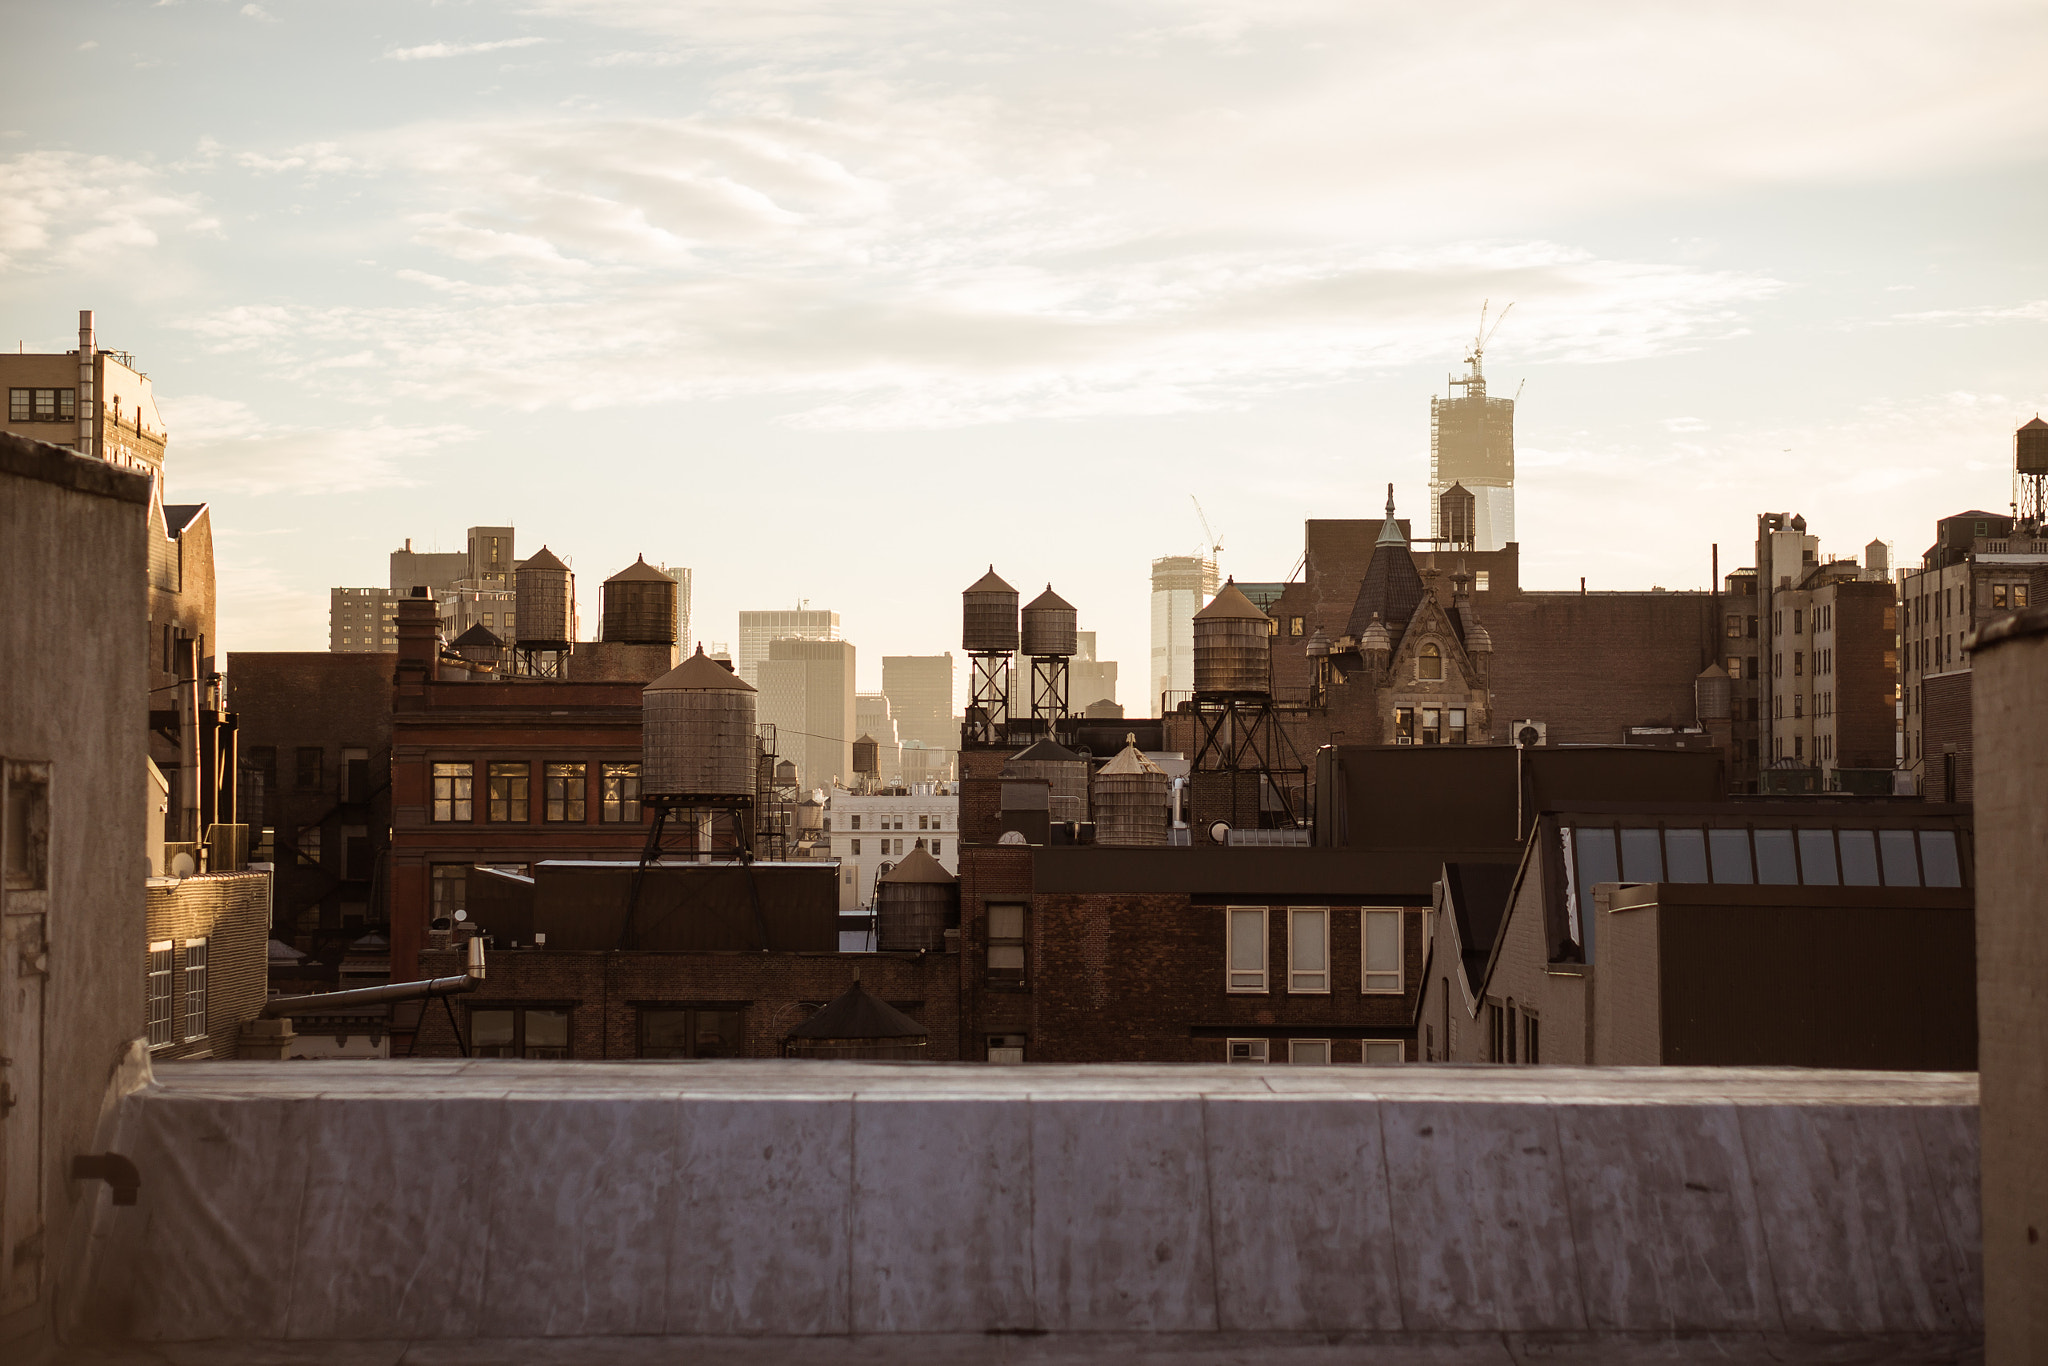 Photograph nyc02 by Wiktor Macura on 500px